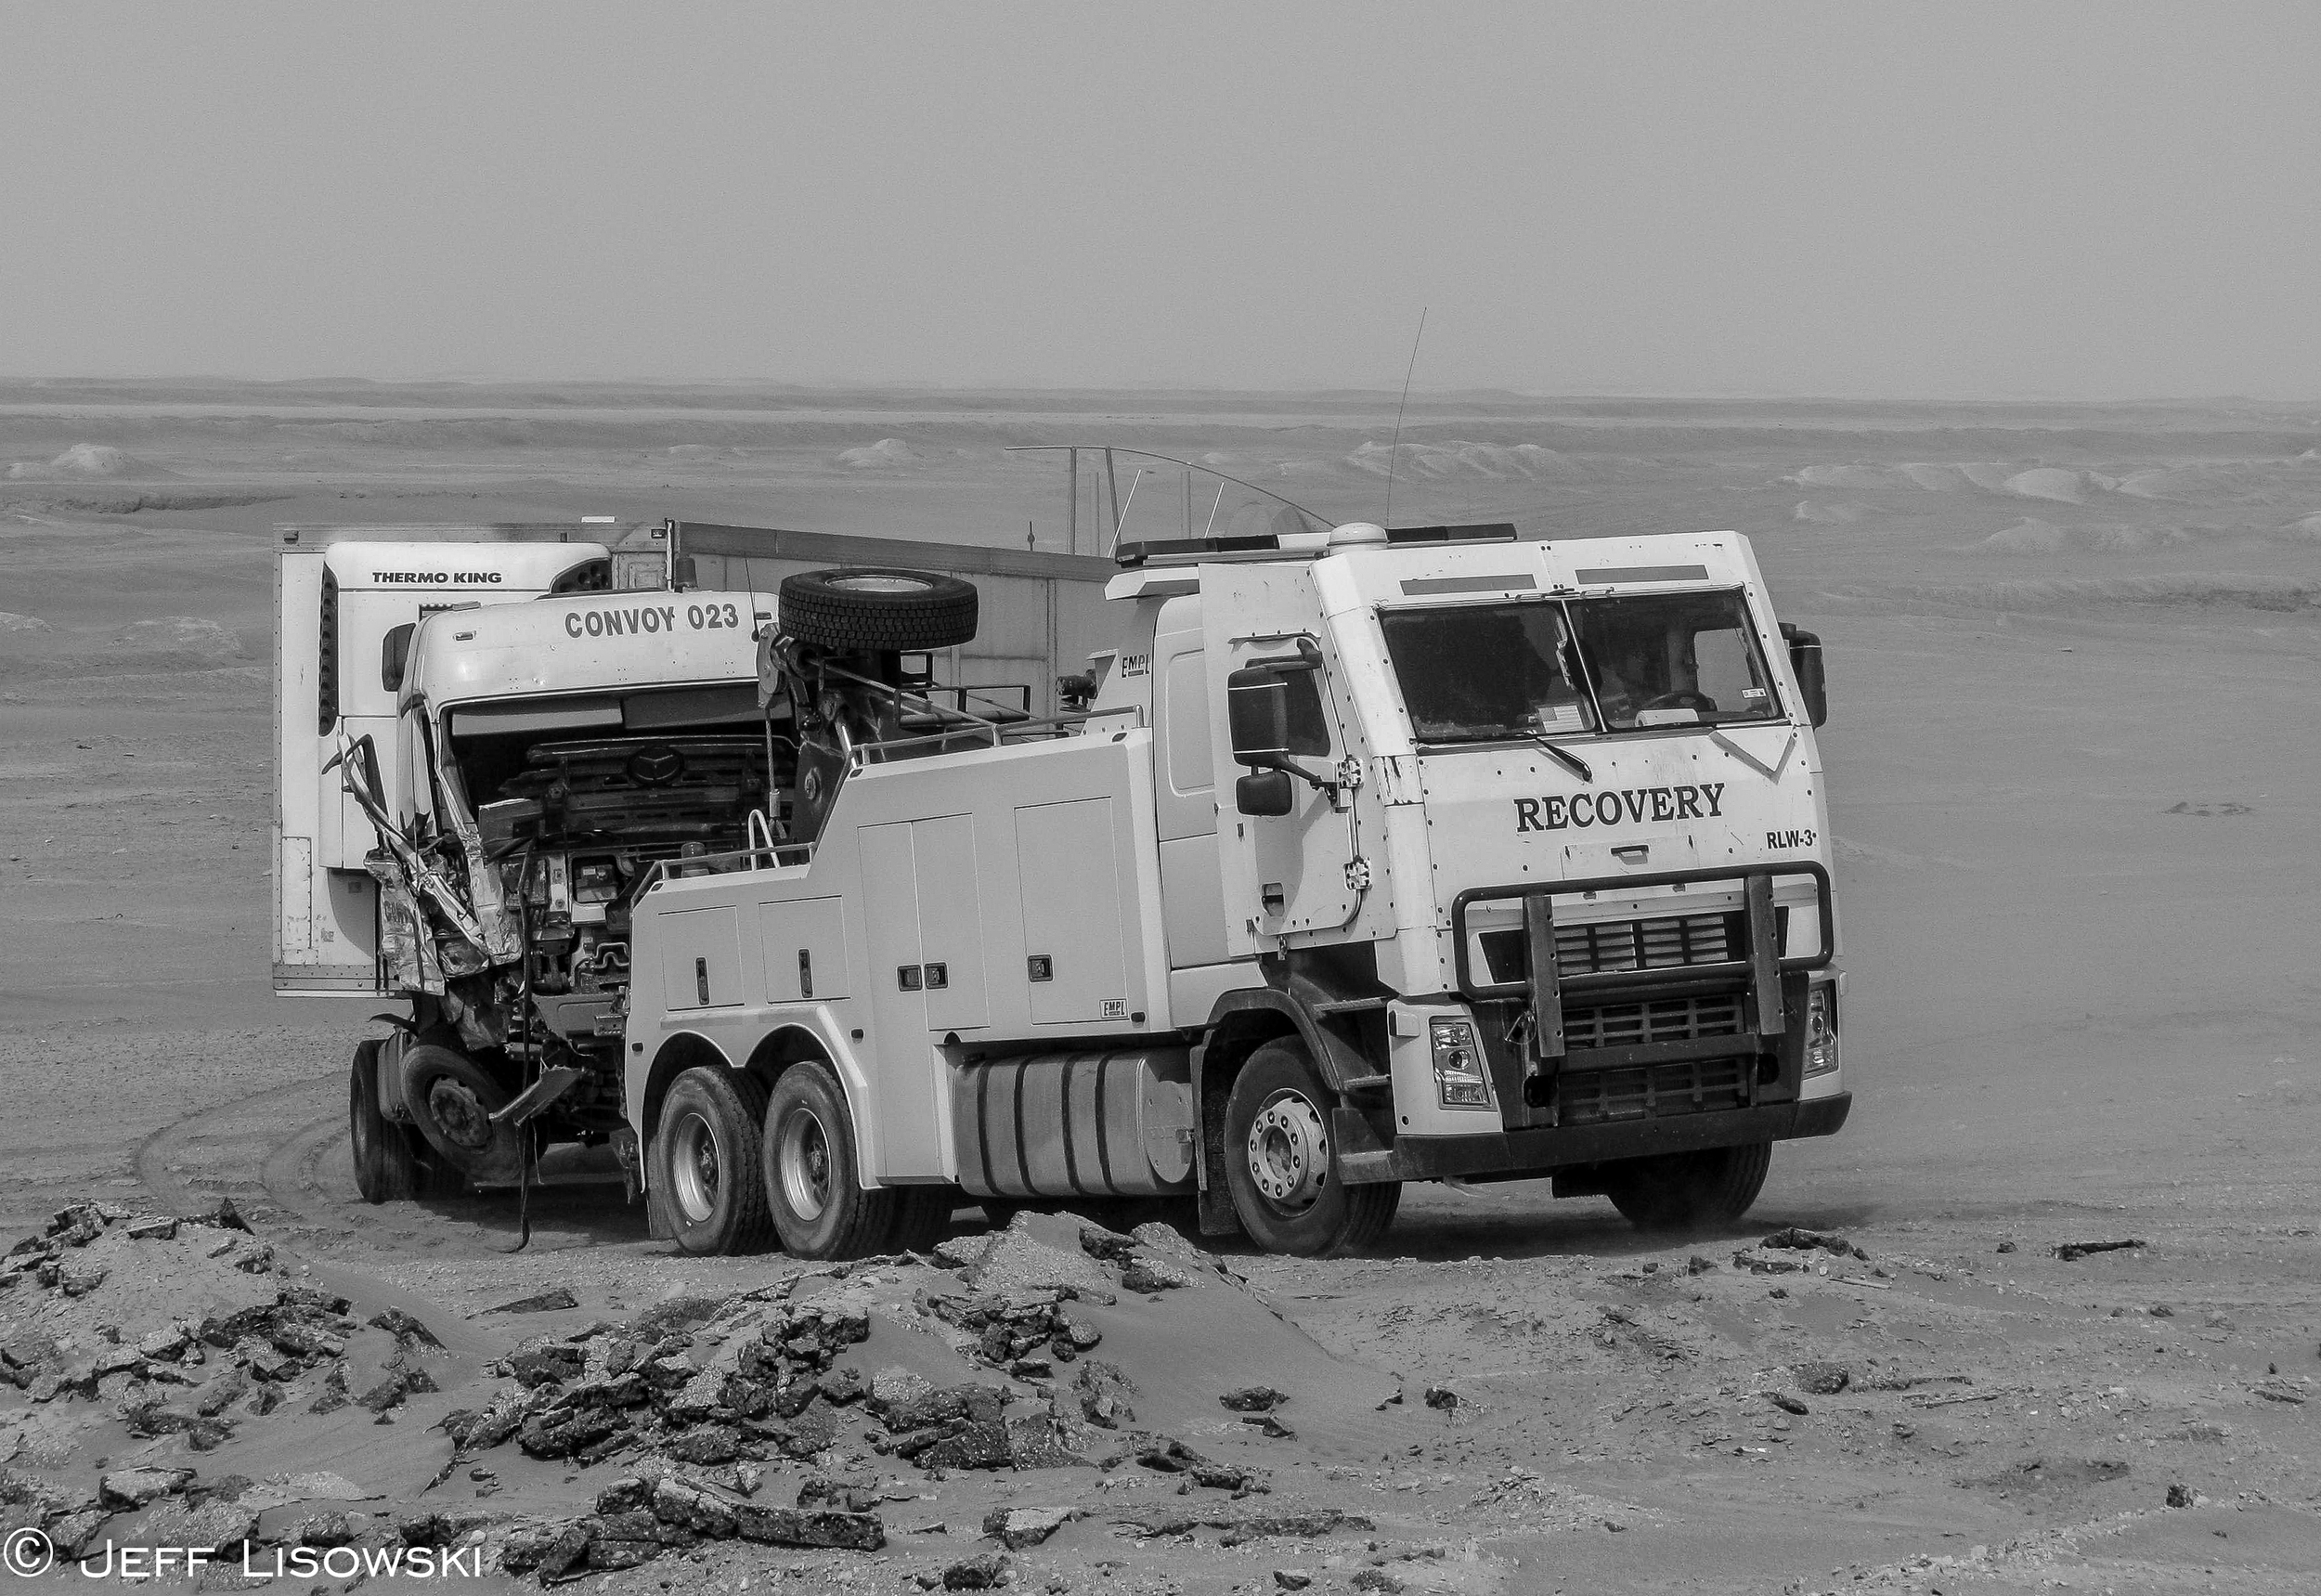 The EMPL wrecker-the workhorse of KBR recovery- on one of both of our last missions. The EMPLs were sent back to Kuwait as they were leased from the Kuwaiti government. Funny how that works.